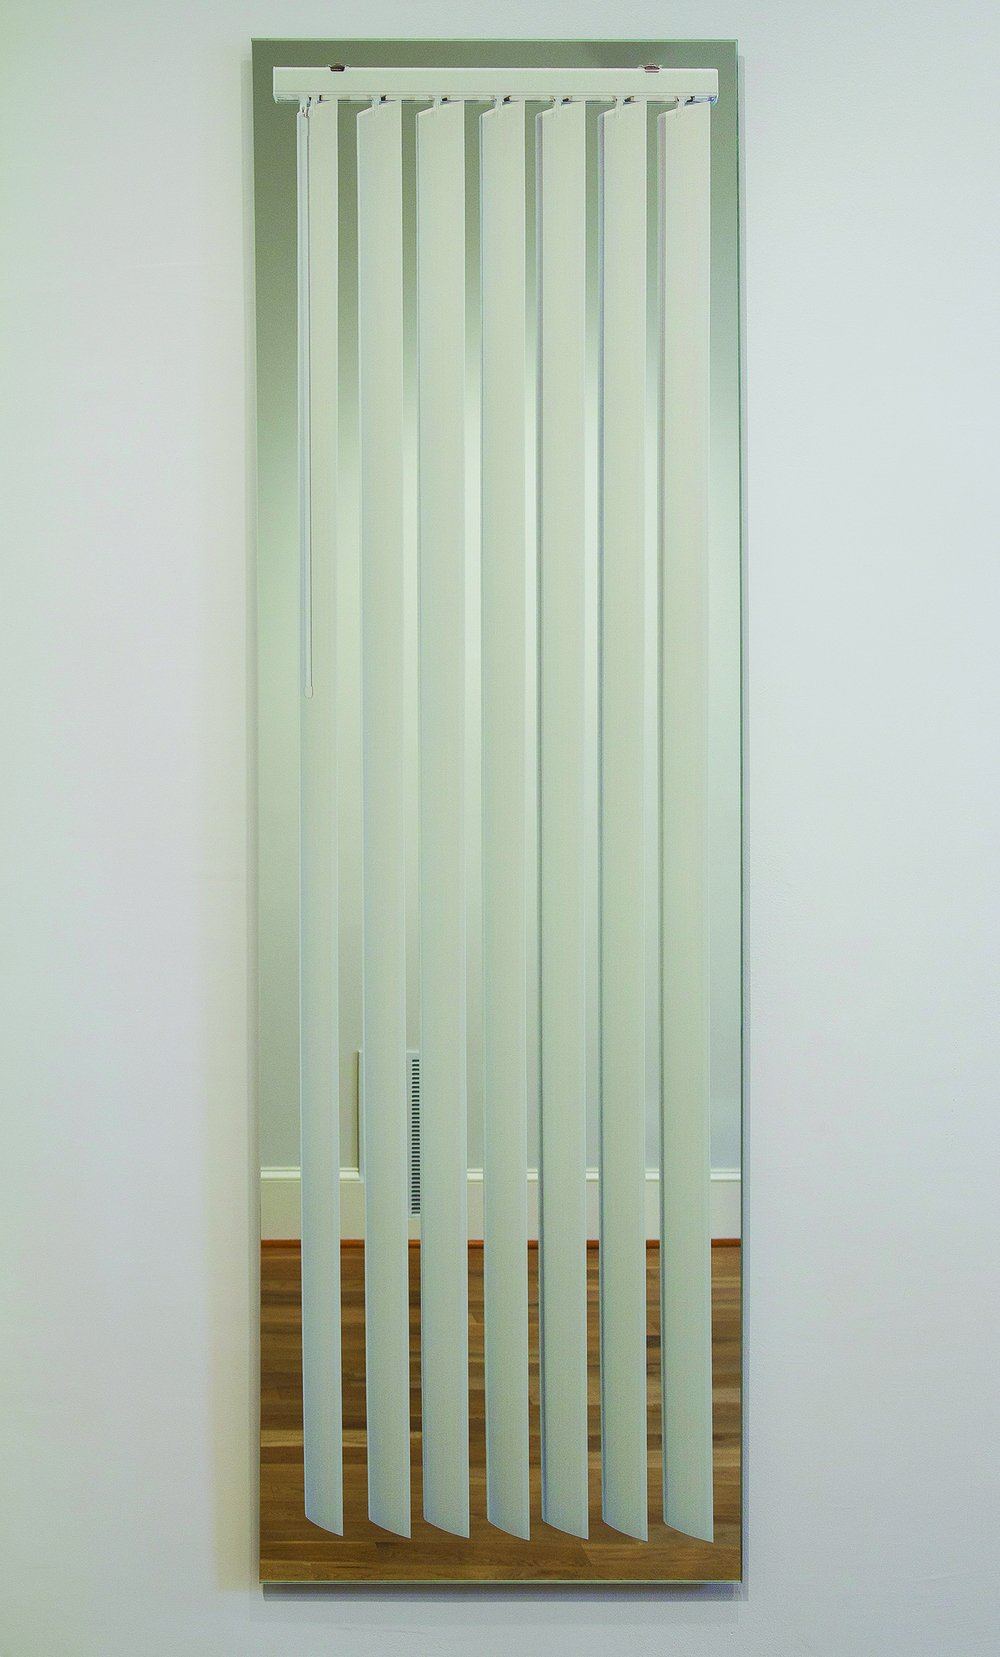 LisaDillin_Window_E Vertical_Blinds_on_Mirror_2012.jpg